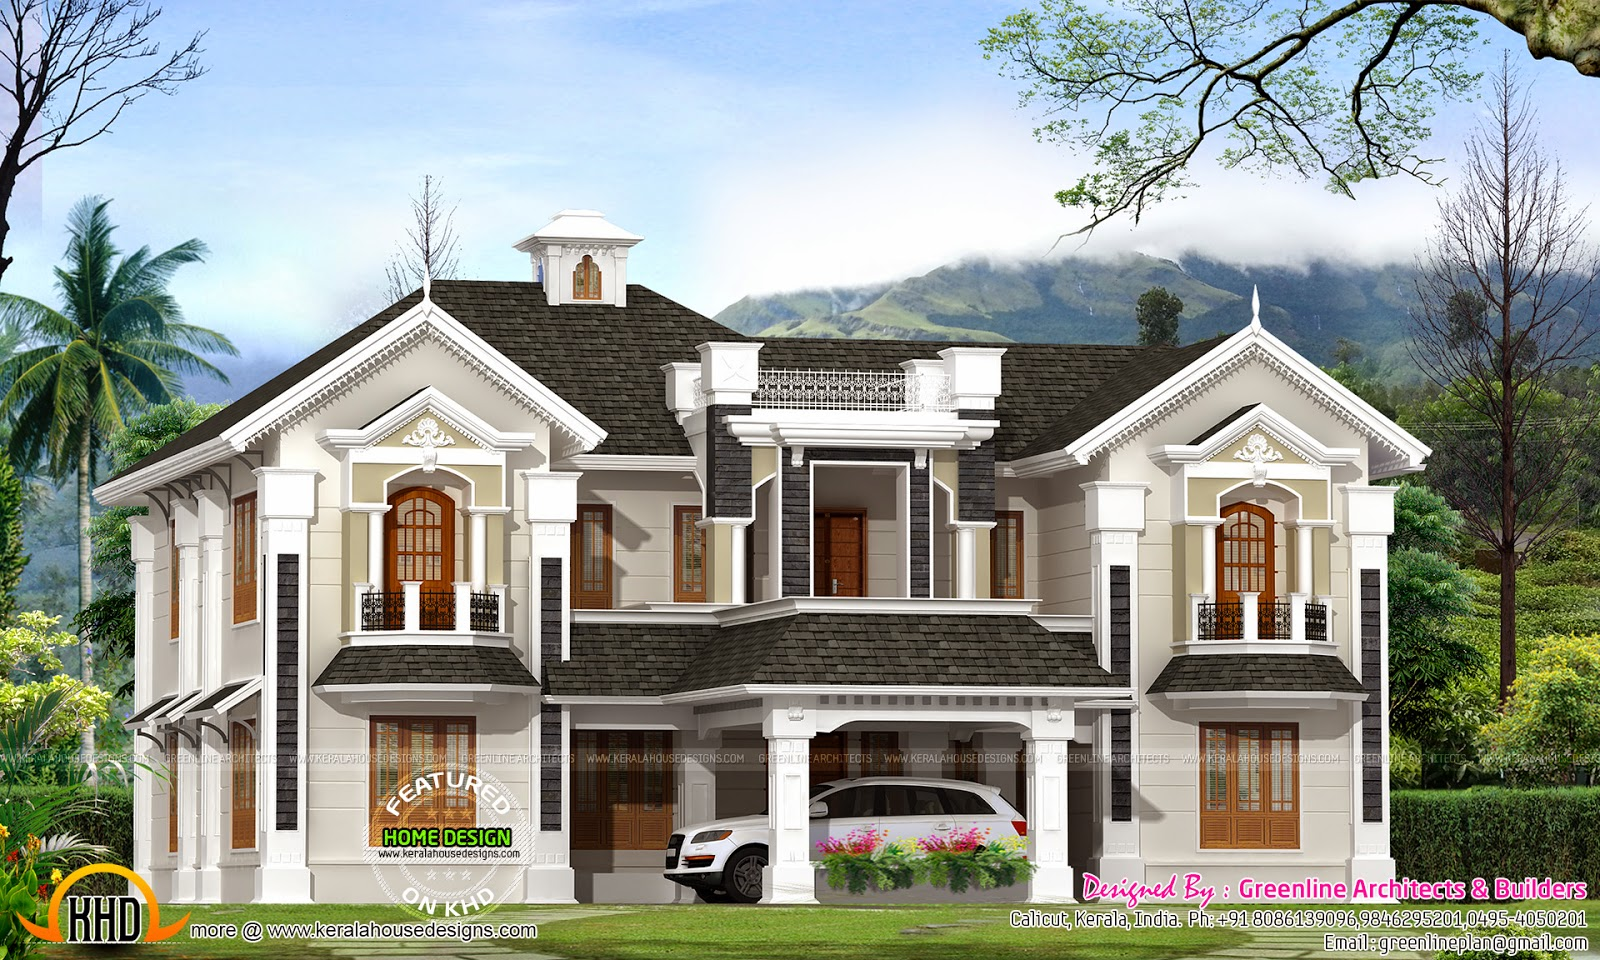 Colonial style house in kerala kerala home design and floor plans - Home decorating style names plan ...